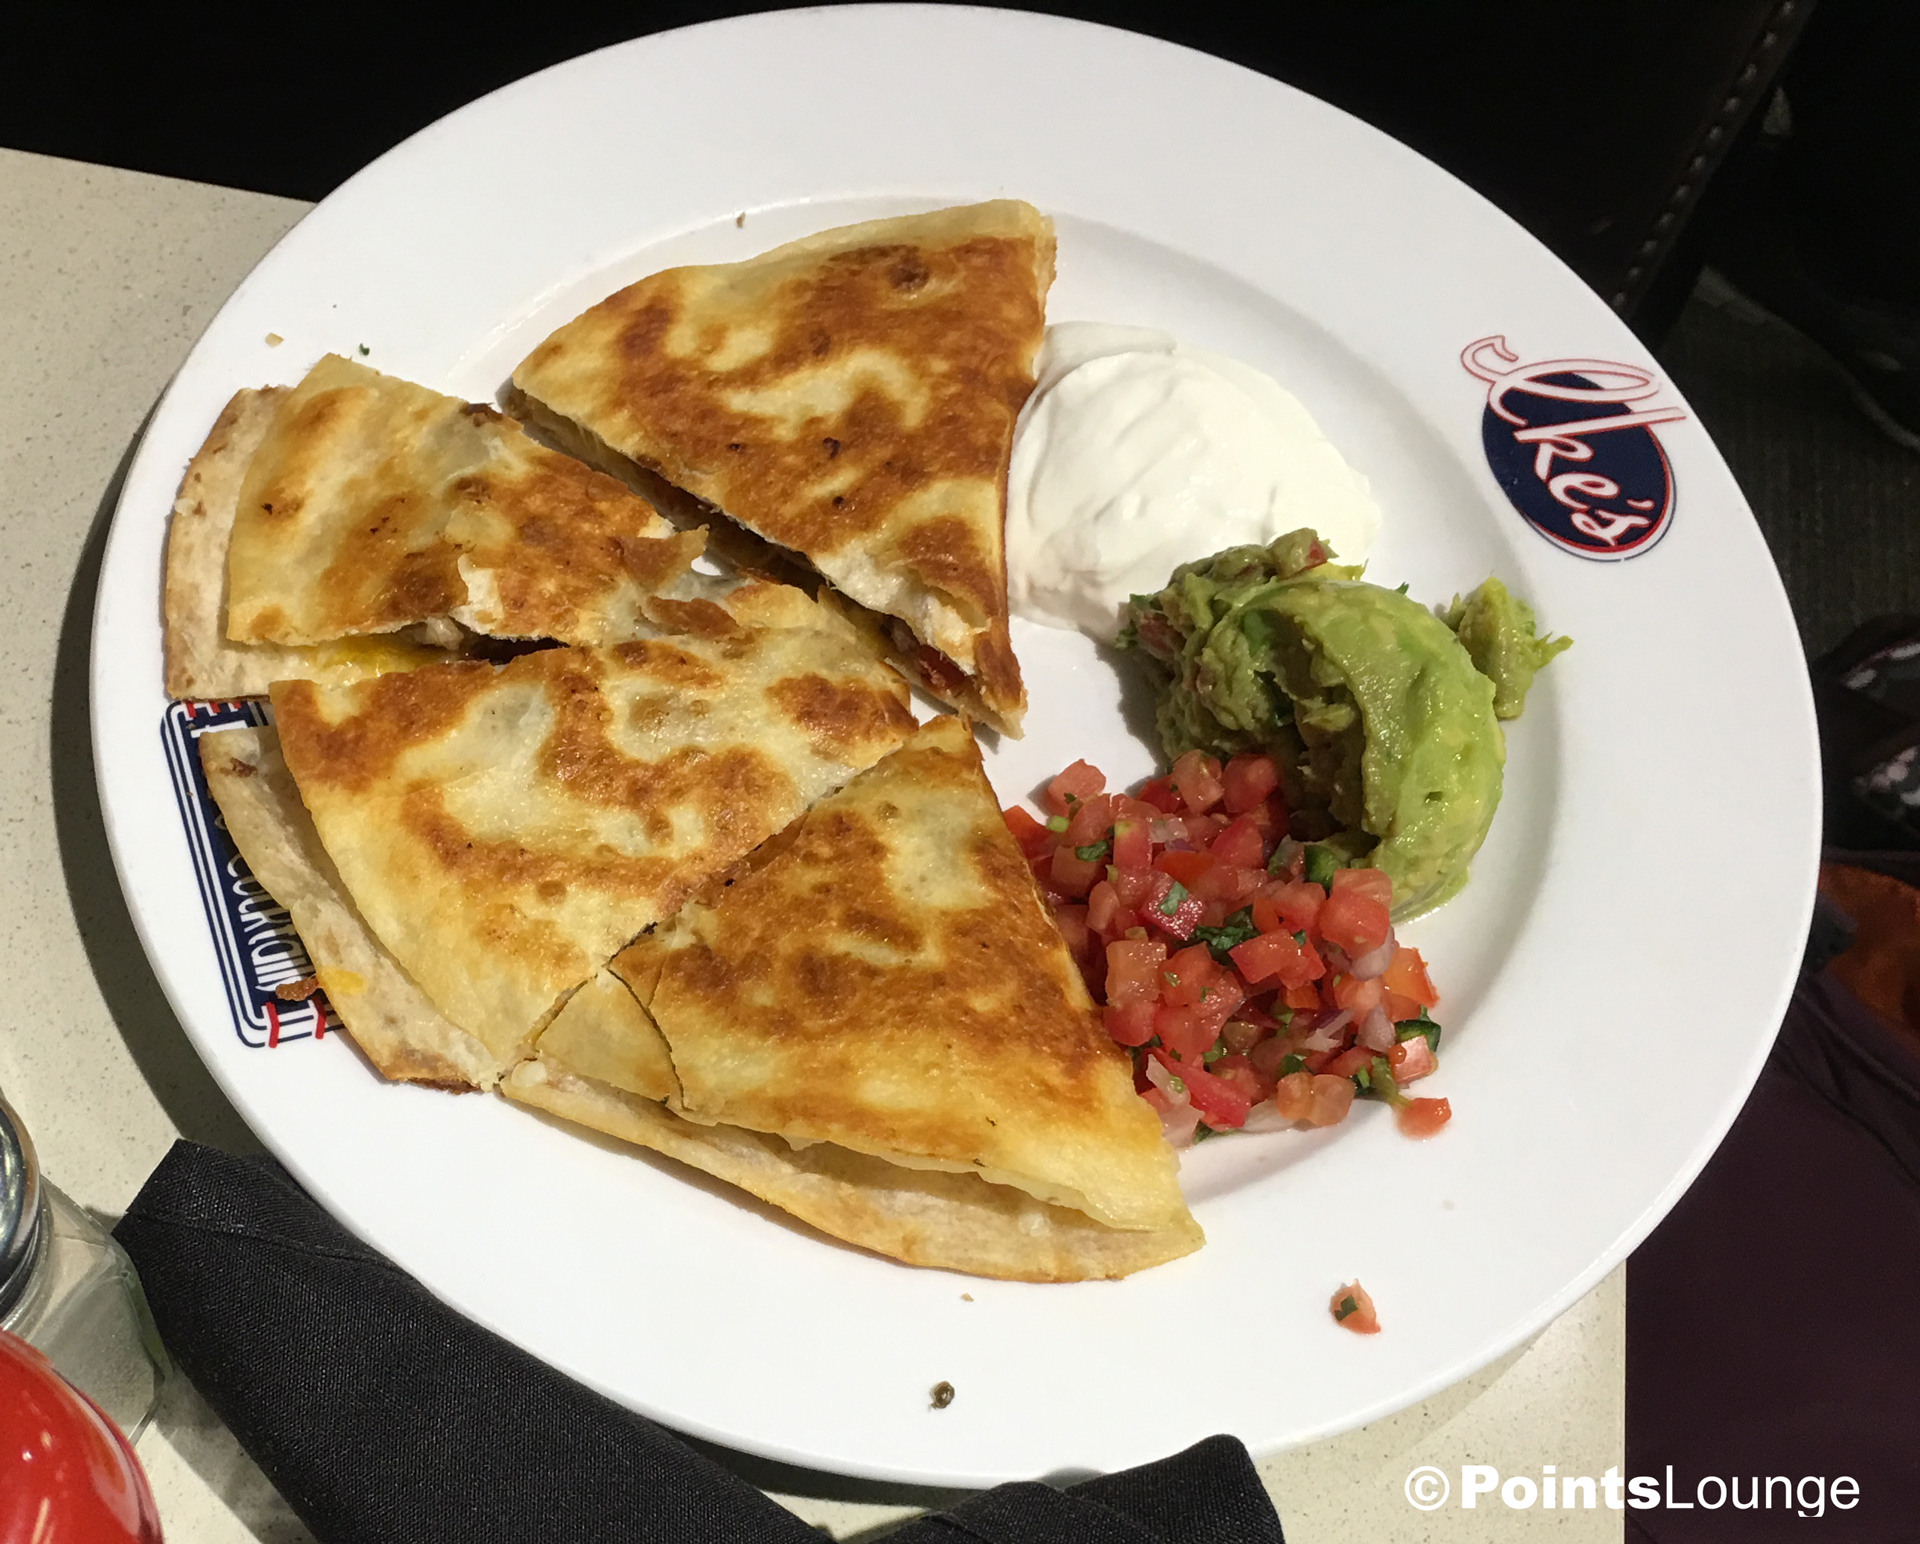 A view of Ike's Quesadilla from the Champions' Grille inside the PGA MSP golf-themed airport lounge at the Minneapolis-St. Paul International Airport. One of the ways the lounge can be accessed is with Priority Pass membership. (Click for a larger image.)